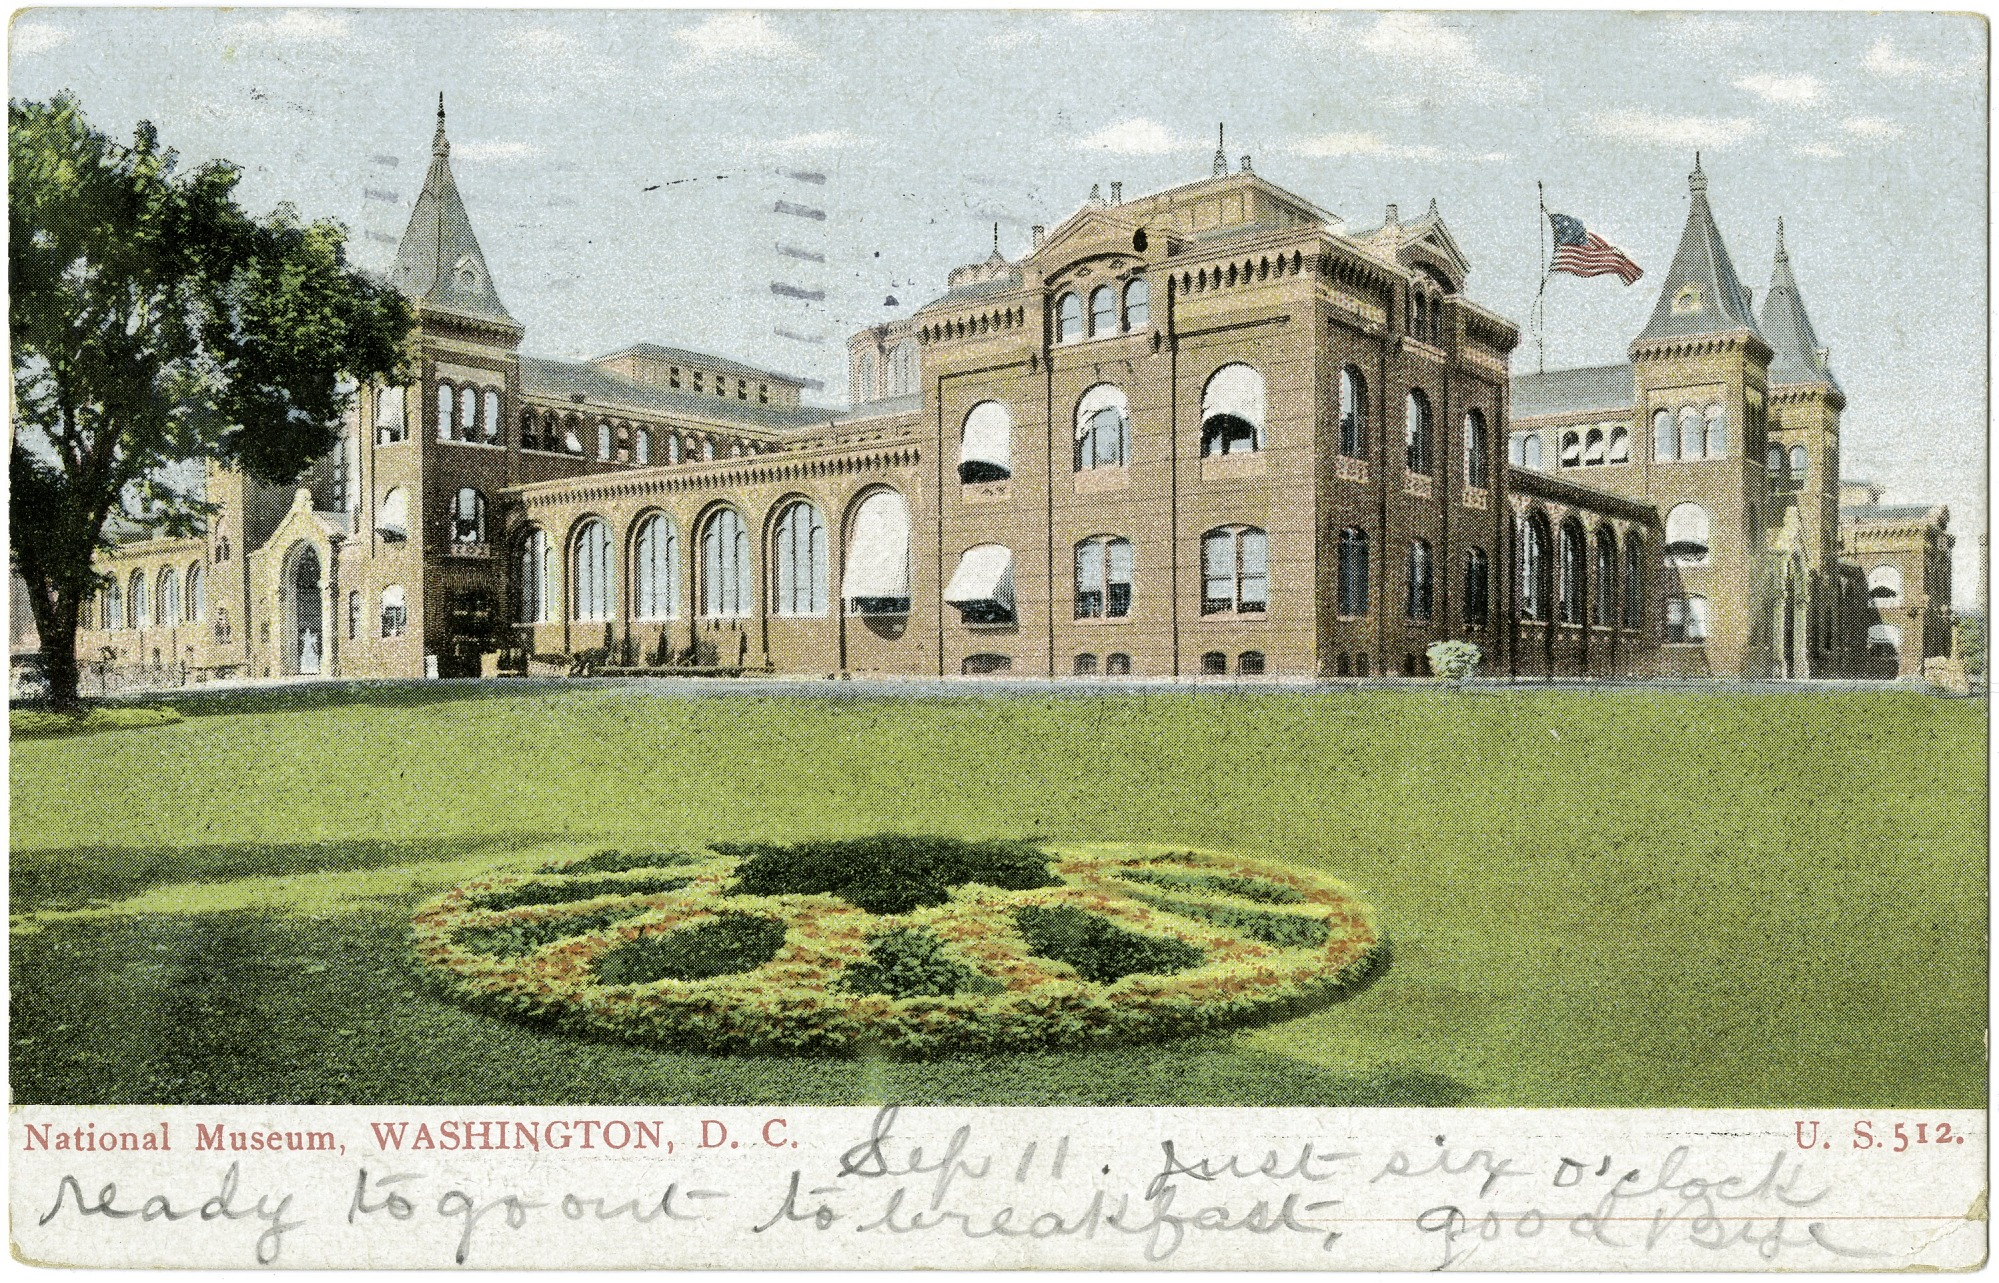 Postcard of the U.S. National Museum and a Garden